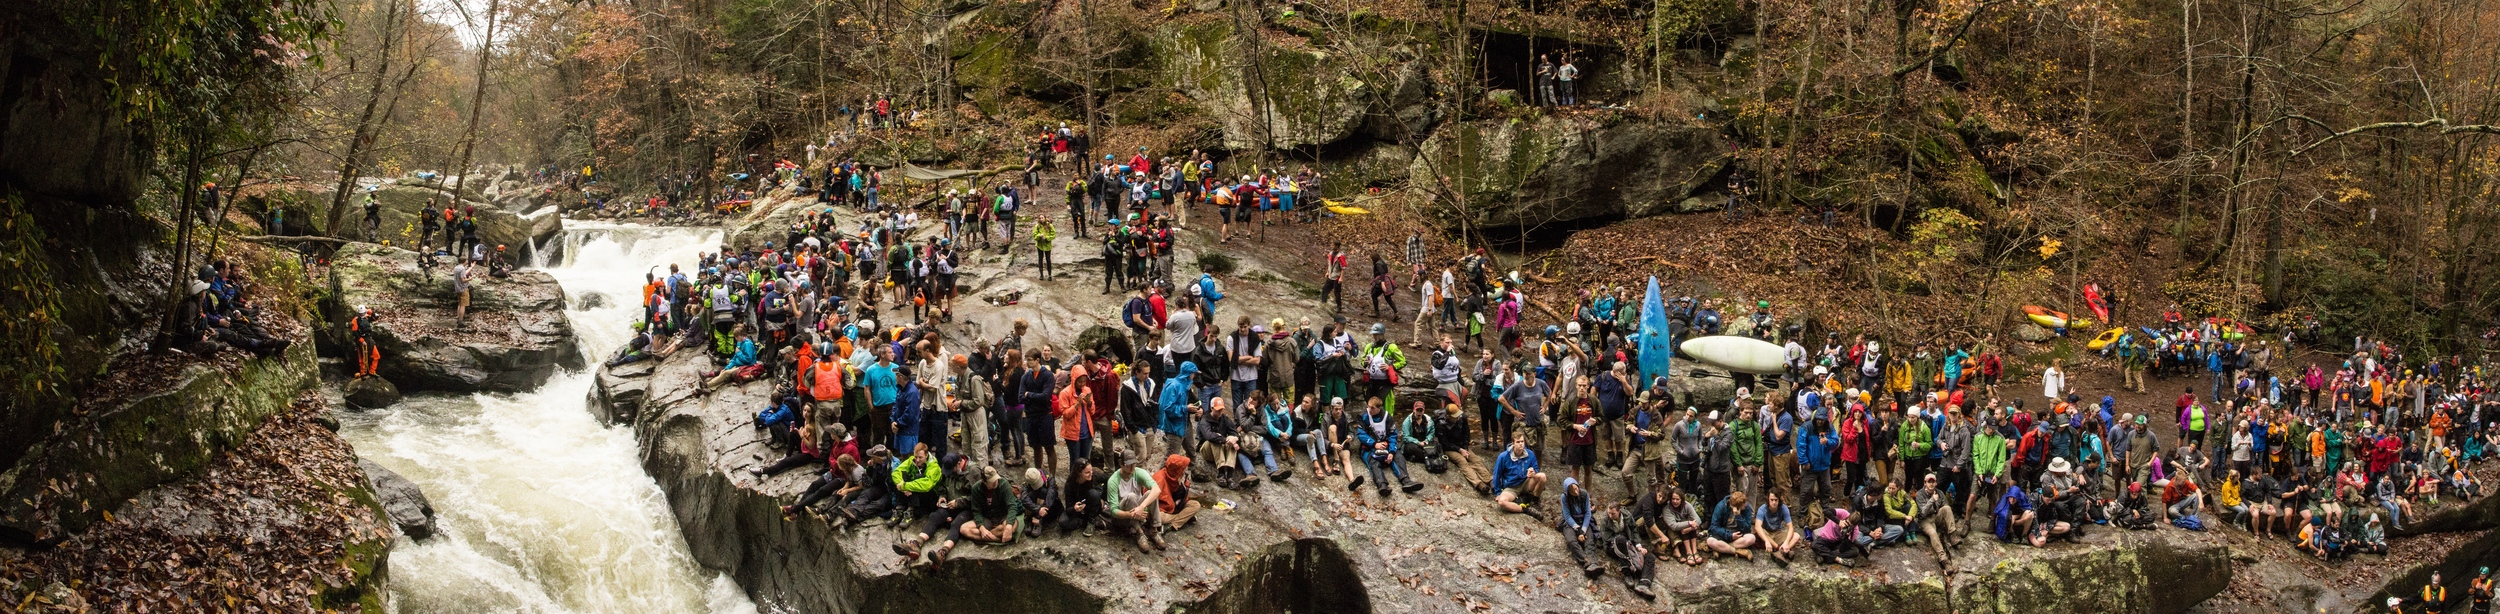 The crowded amphitheater that is Gorilla, at the annual Green Race.